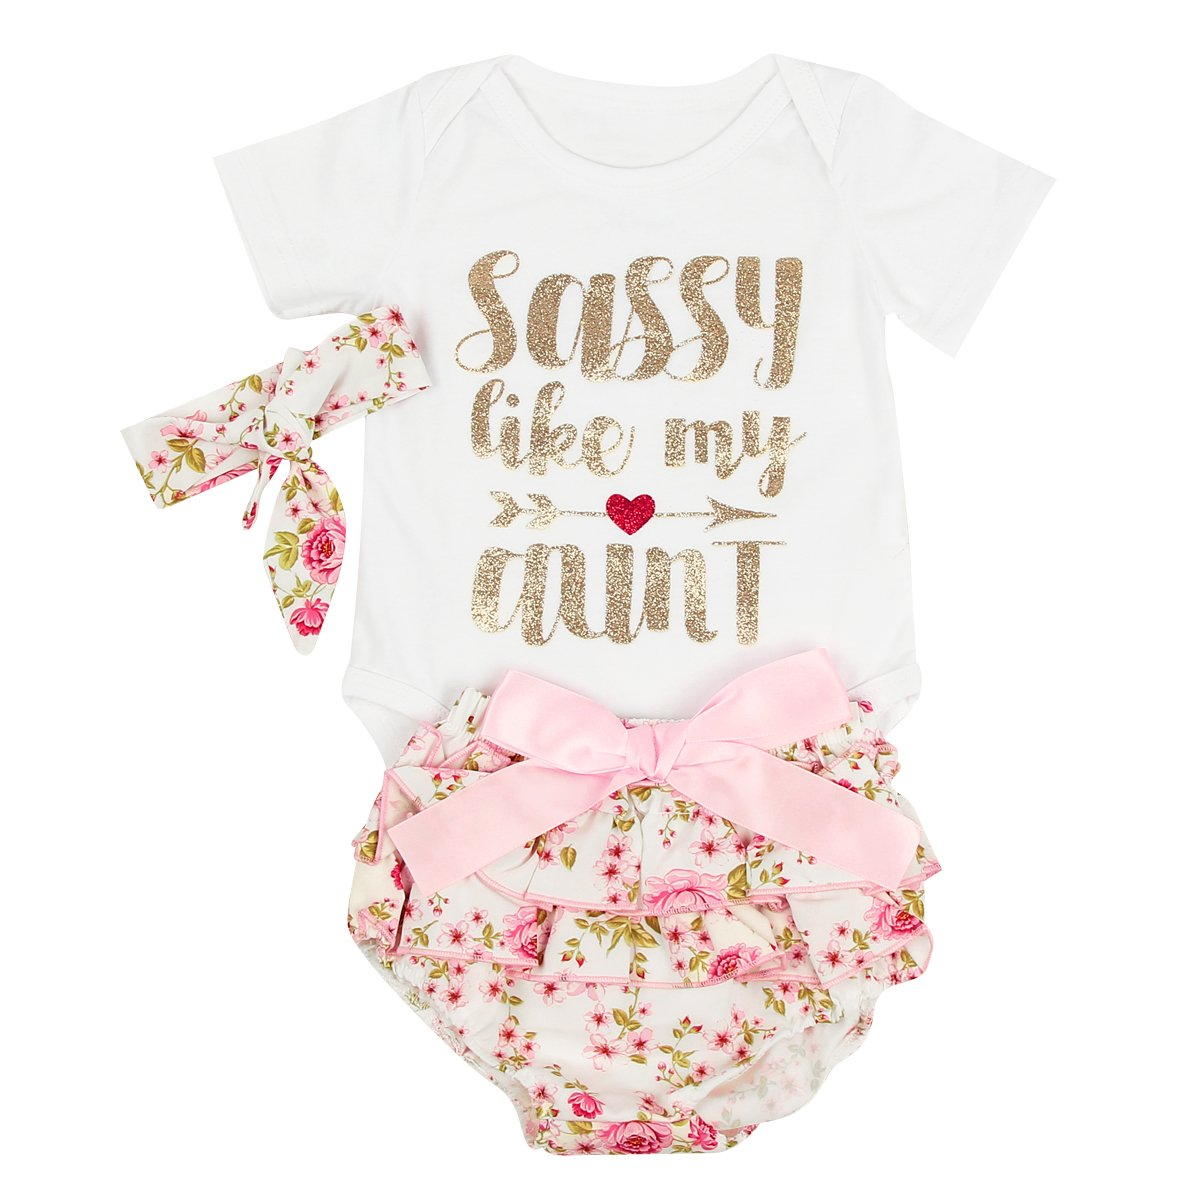 puseky 0-24M Infant Baby Girls Letters Romper+Floral Shorts+Headband Clothes Set